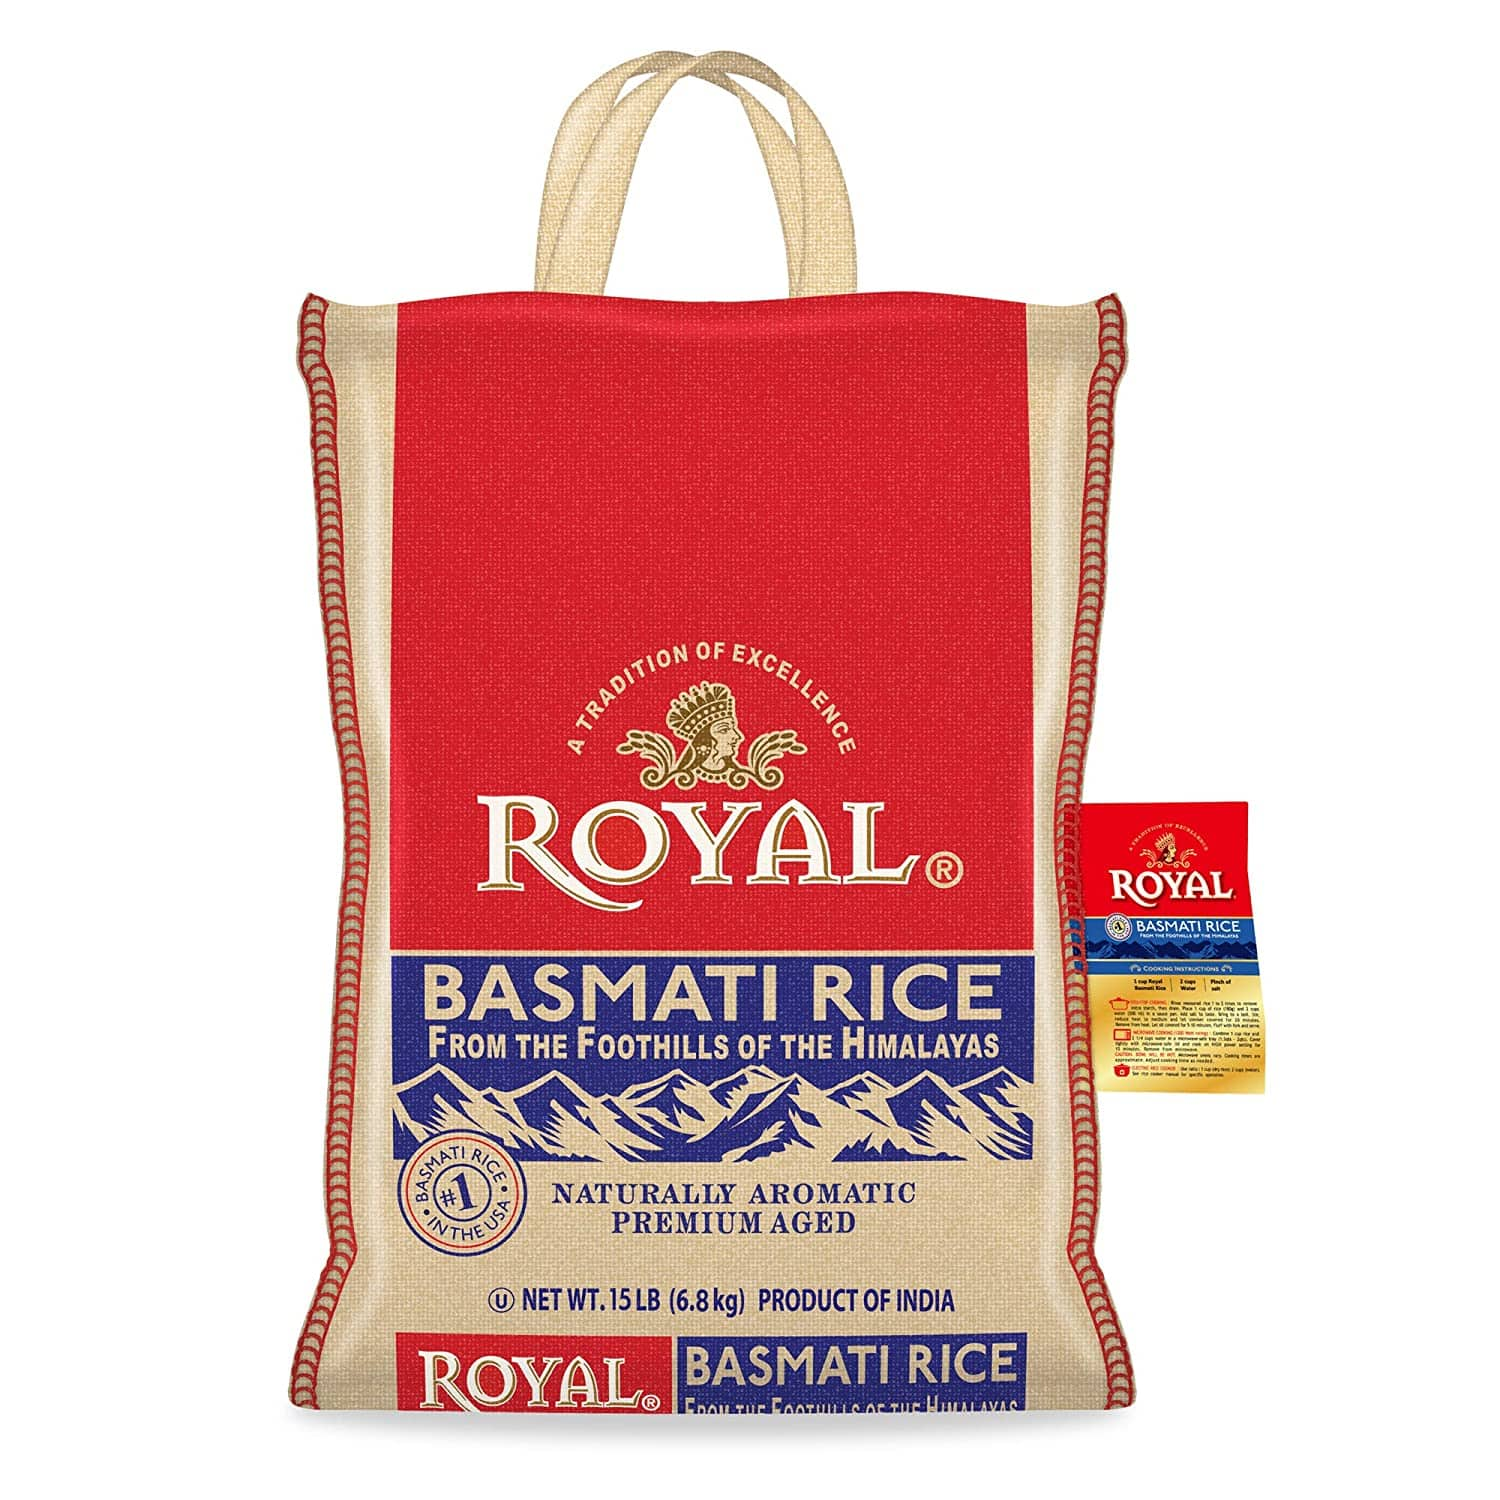 Authentic Royal Basmati Rice, 15-Pound Bag: $14.24 or less w/S&S